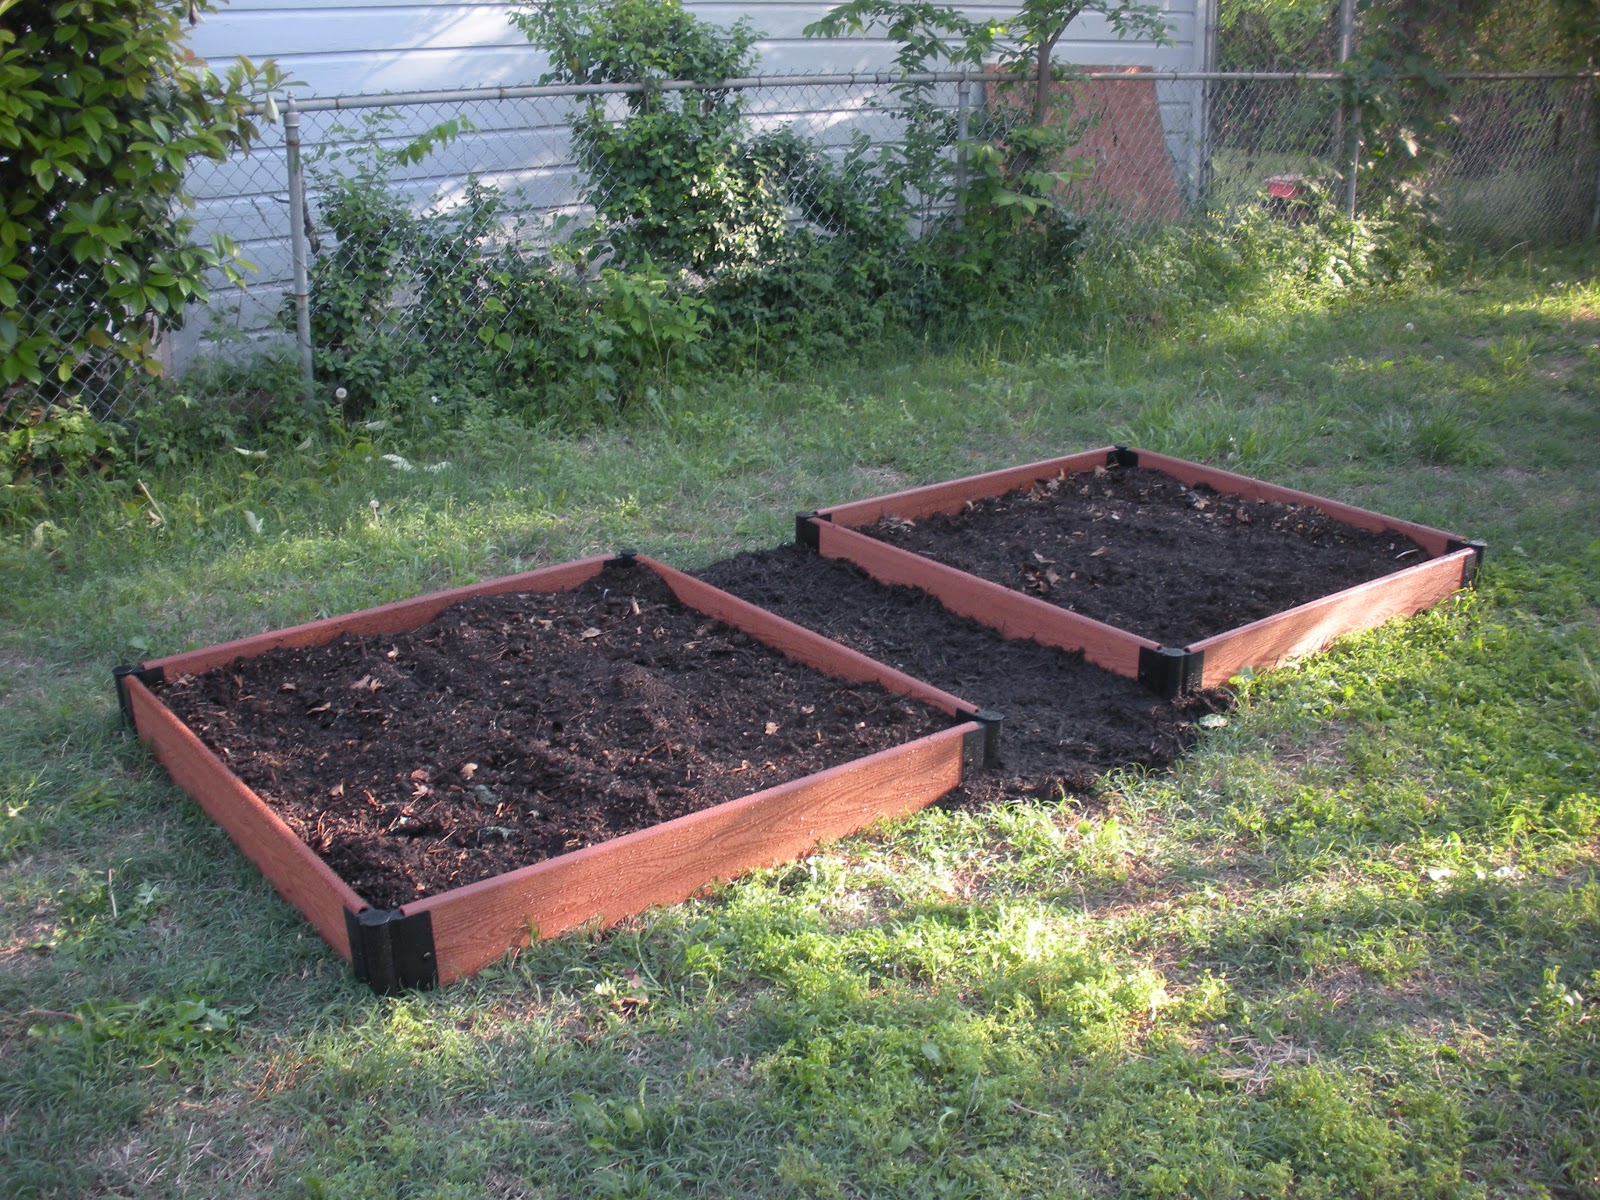 6 Eco Friendly Diy Homes Built For 20k Or Less: Life Of A Crafter: Crafting A Raised Garden Bed On The Cheap